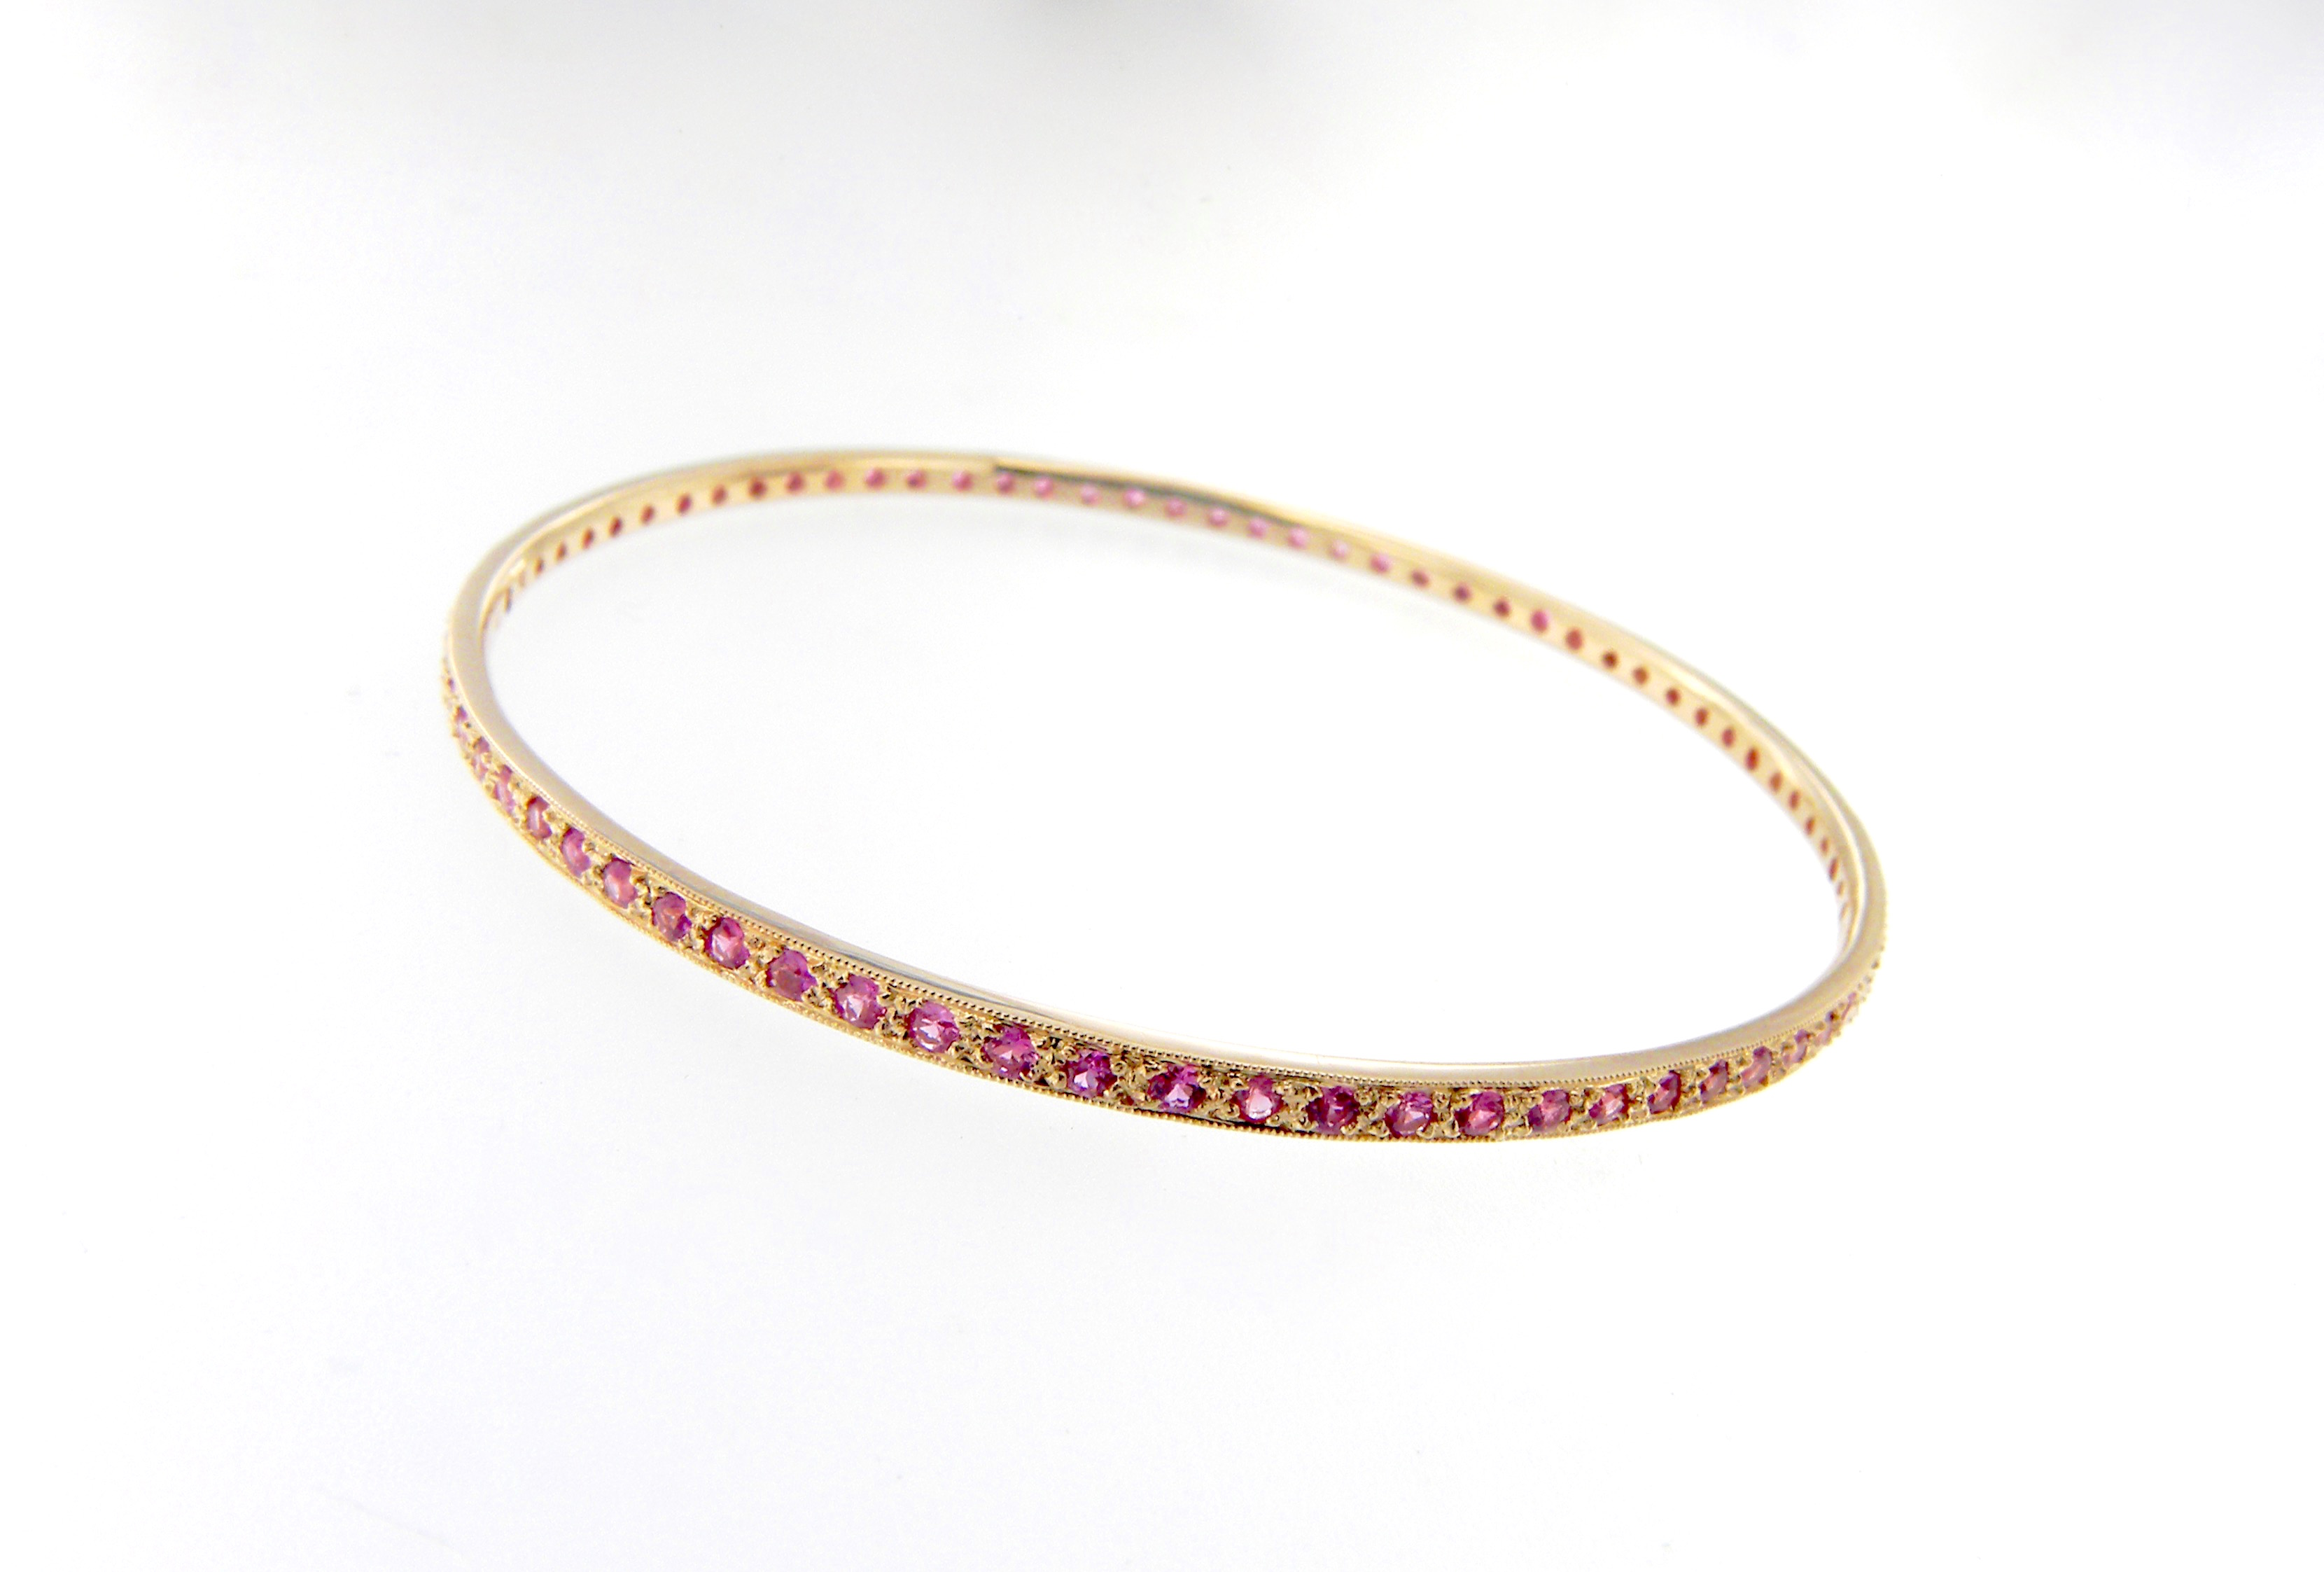 jewels online vuitton s louis pink christies diamond and sapphire les craquantes eco bracelet